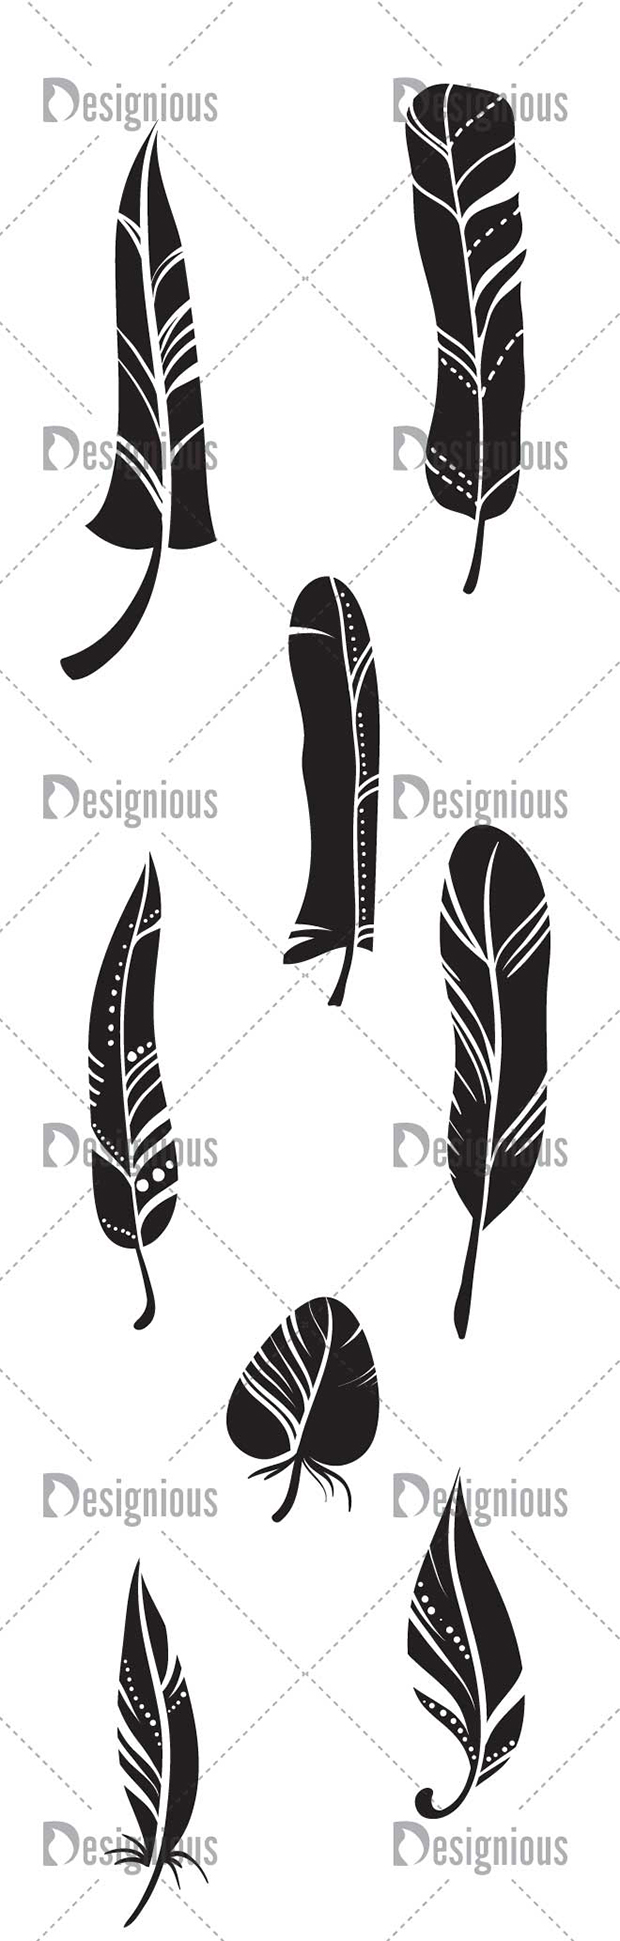 Vector Feathers Pack 1 designious vector feathers pack 1 large preview